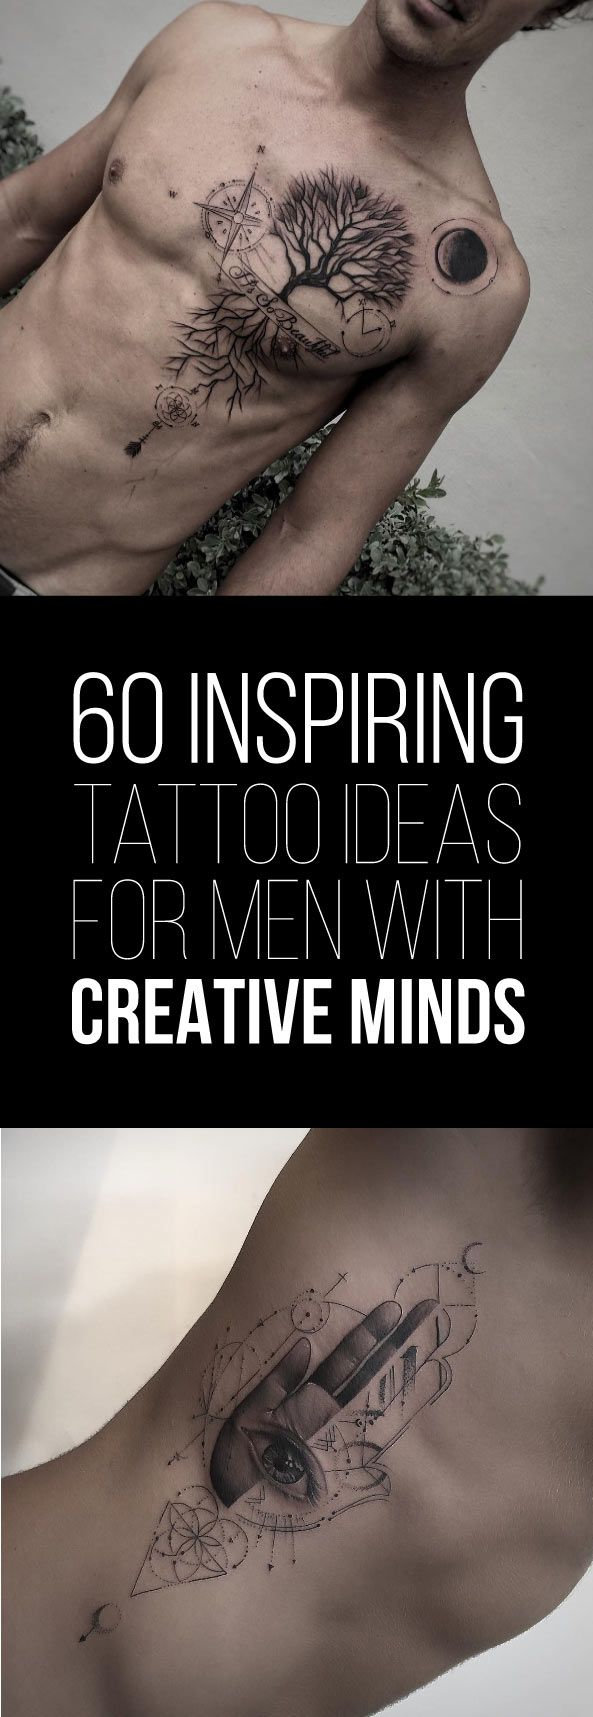 60 Inspiring Tattoo Ideas for Men with Creative Minds | TattooBlend